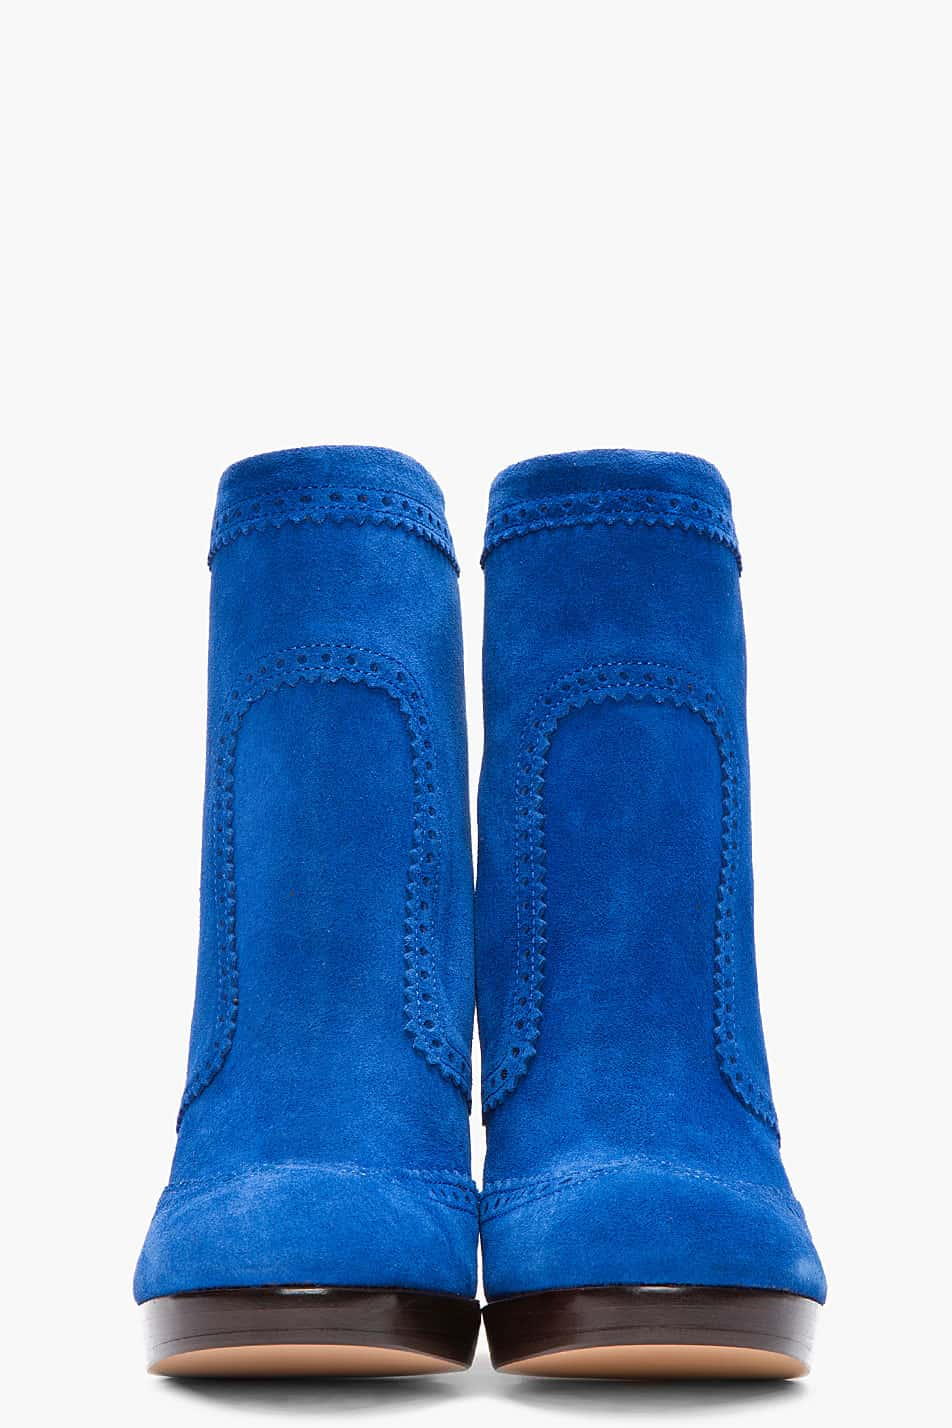 designer-blue-chunky-boots-loribay